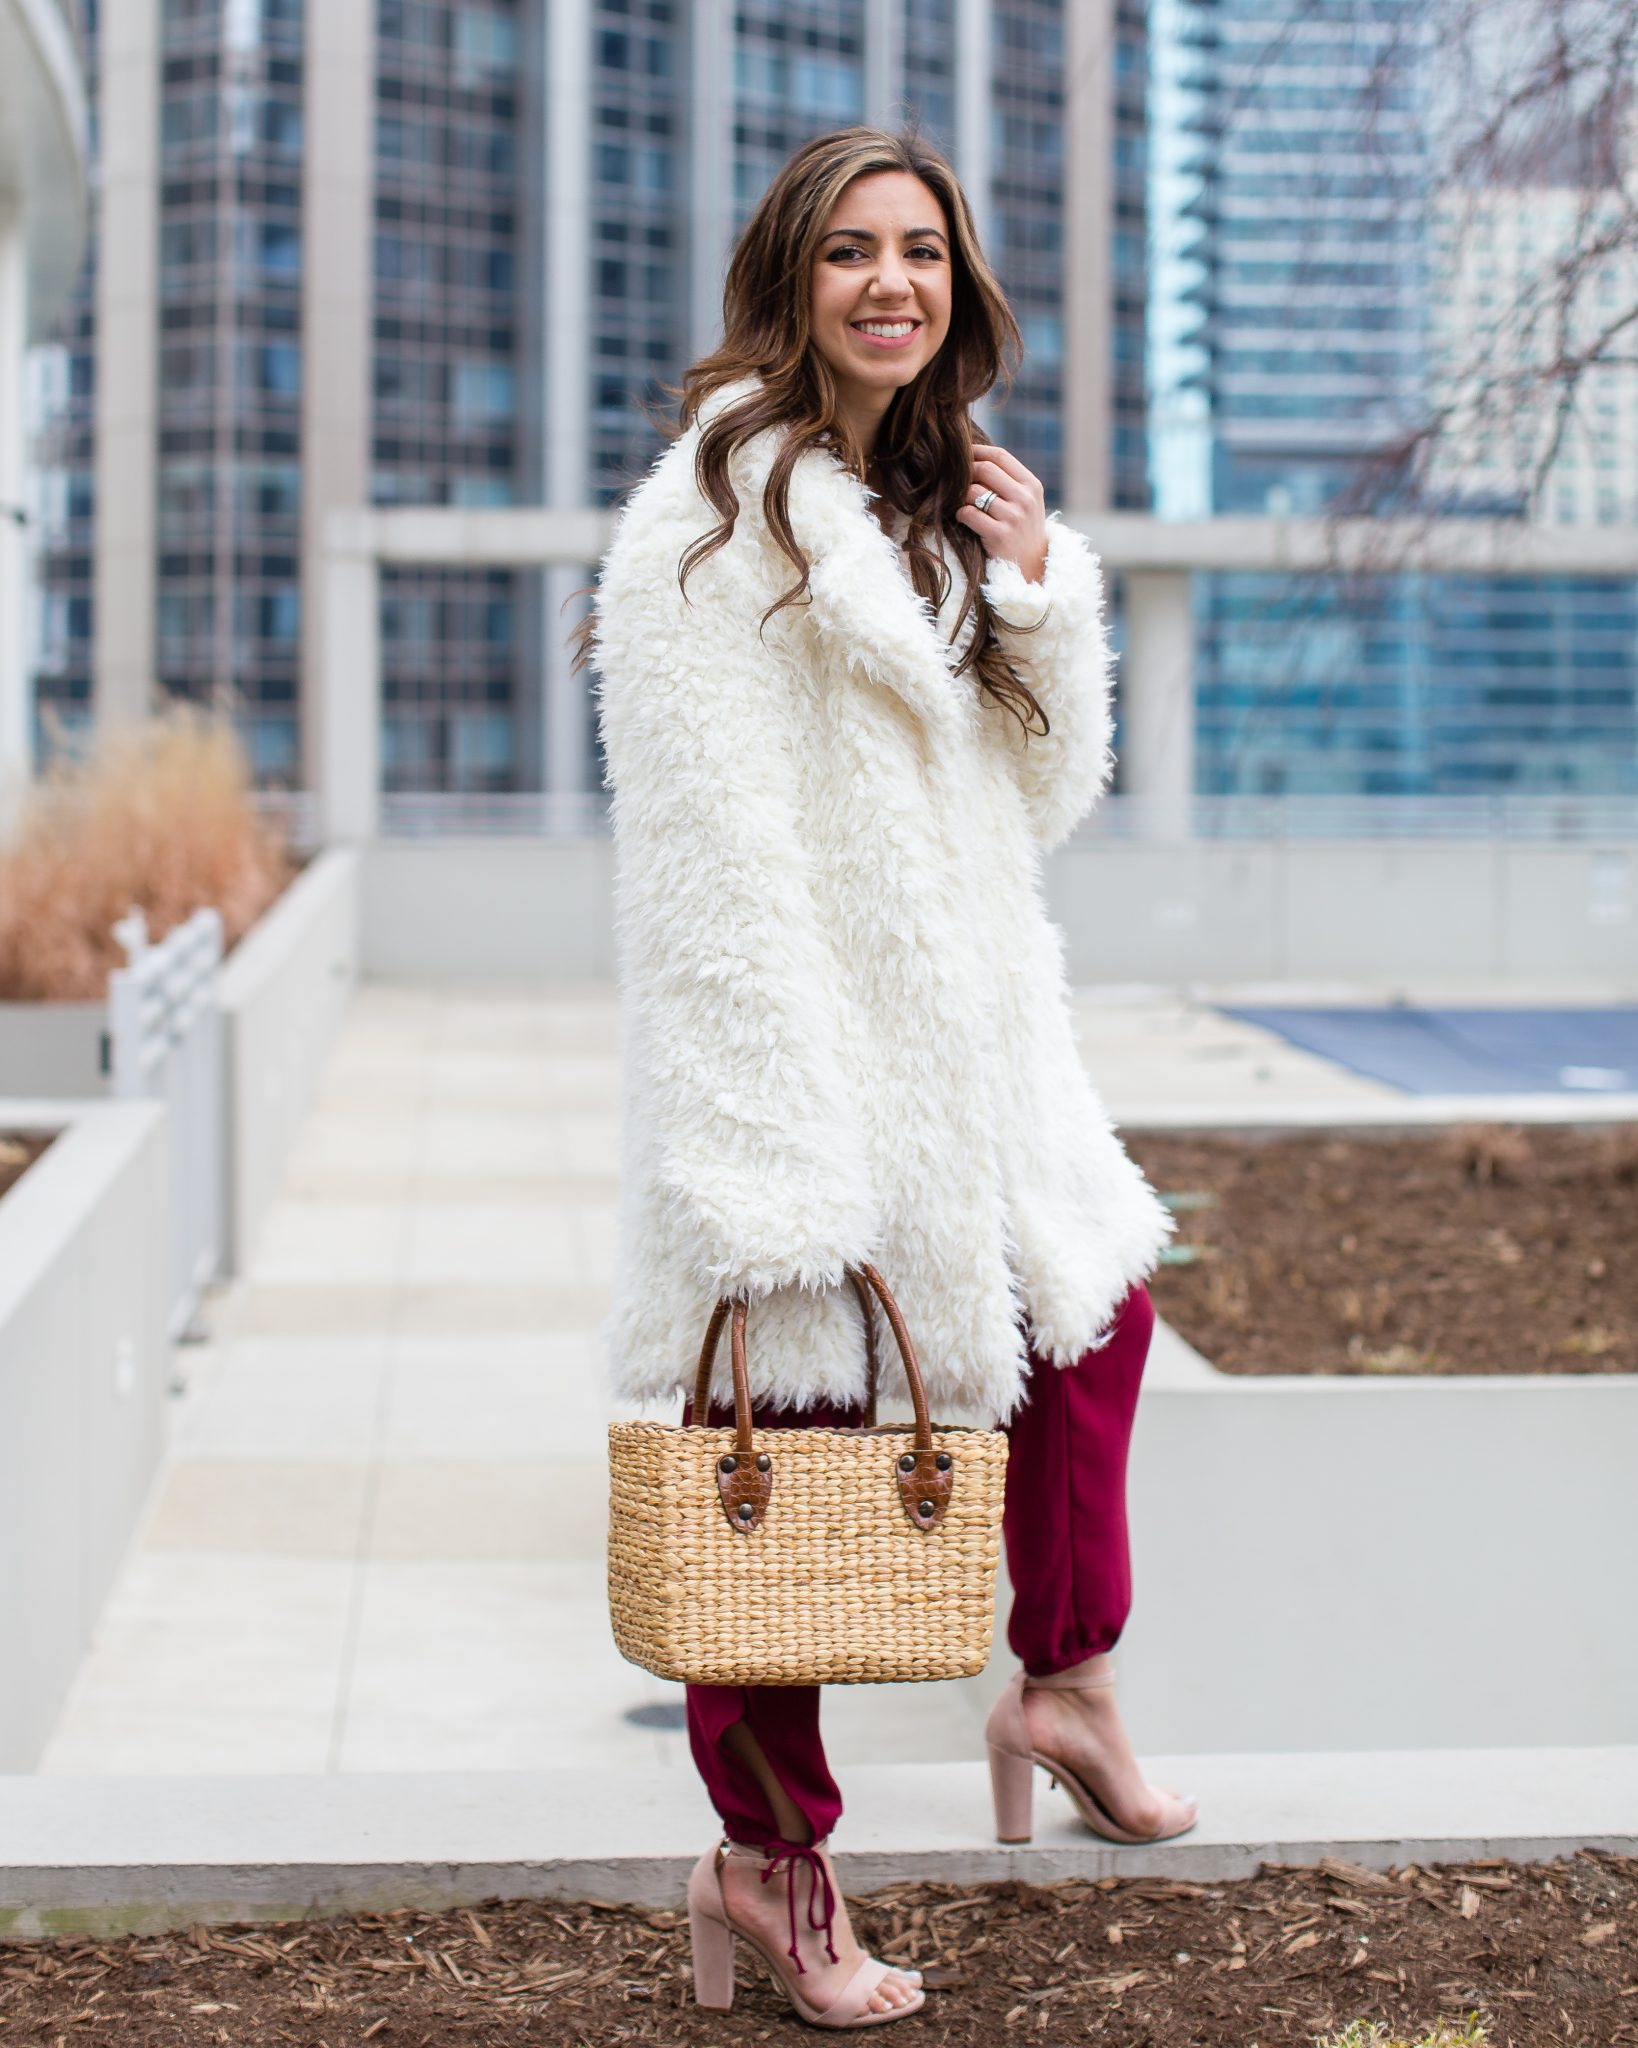 Lifestyle blogger Roxanne of Glass of Glam wearing a shaggy coat, burgundy pants, Sea and Grass straw tote, and a le tote necklace - How I Shoot Blog Photos by popular Chicago style blogger Glass of Glam